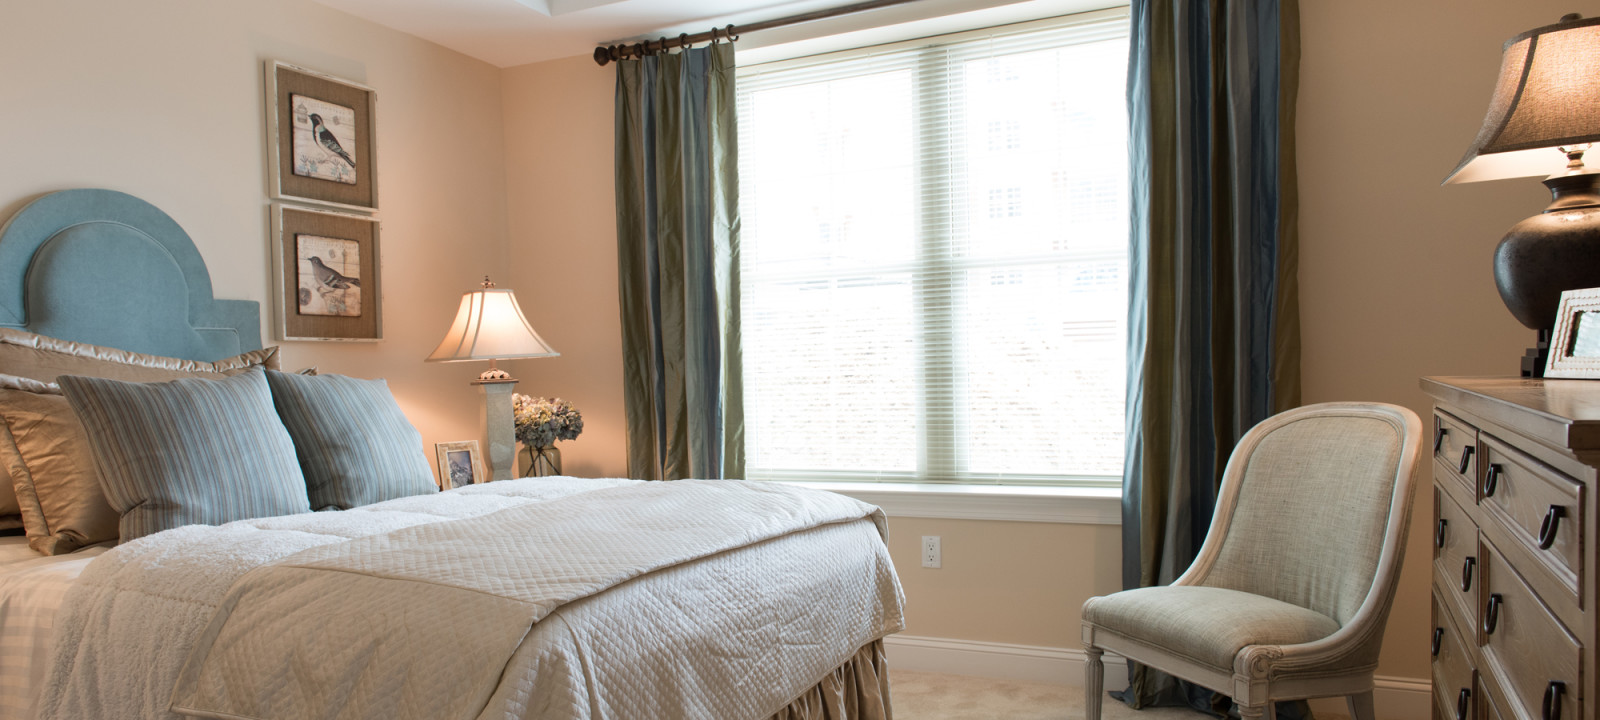 large bedroom at Meridian at Eagleview apartments in Exton PA